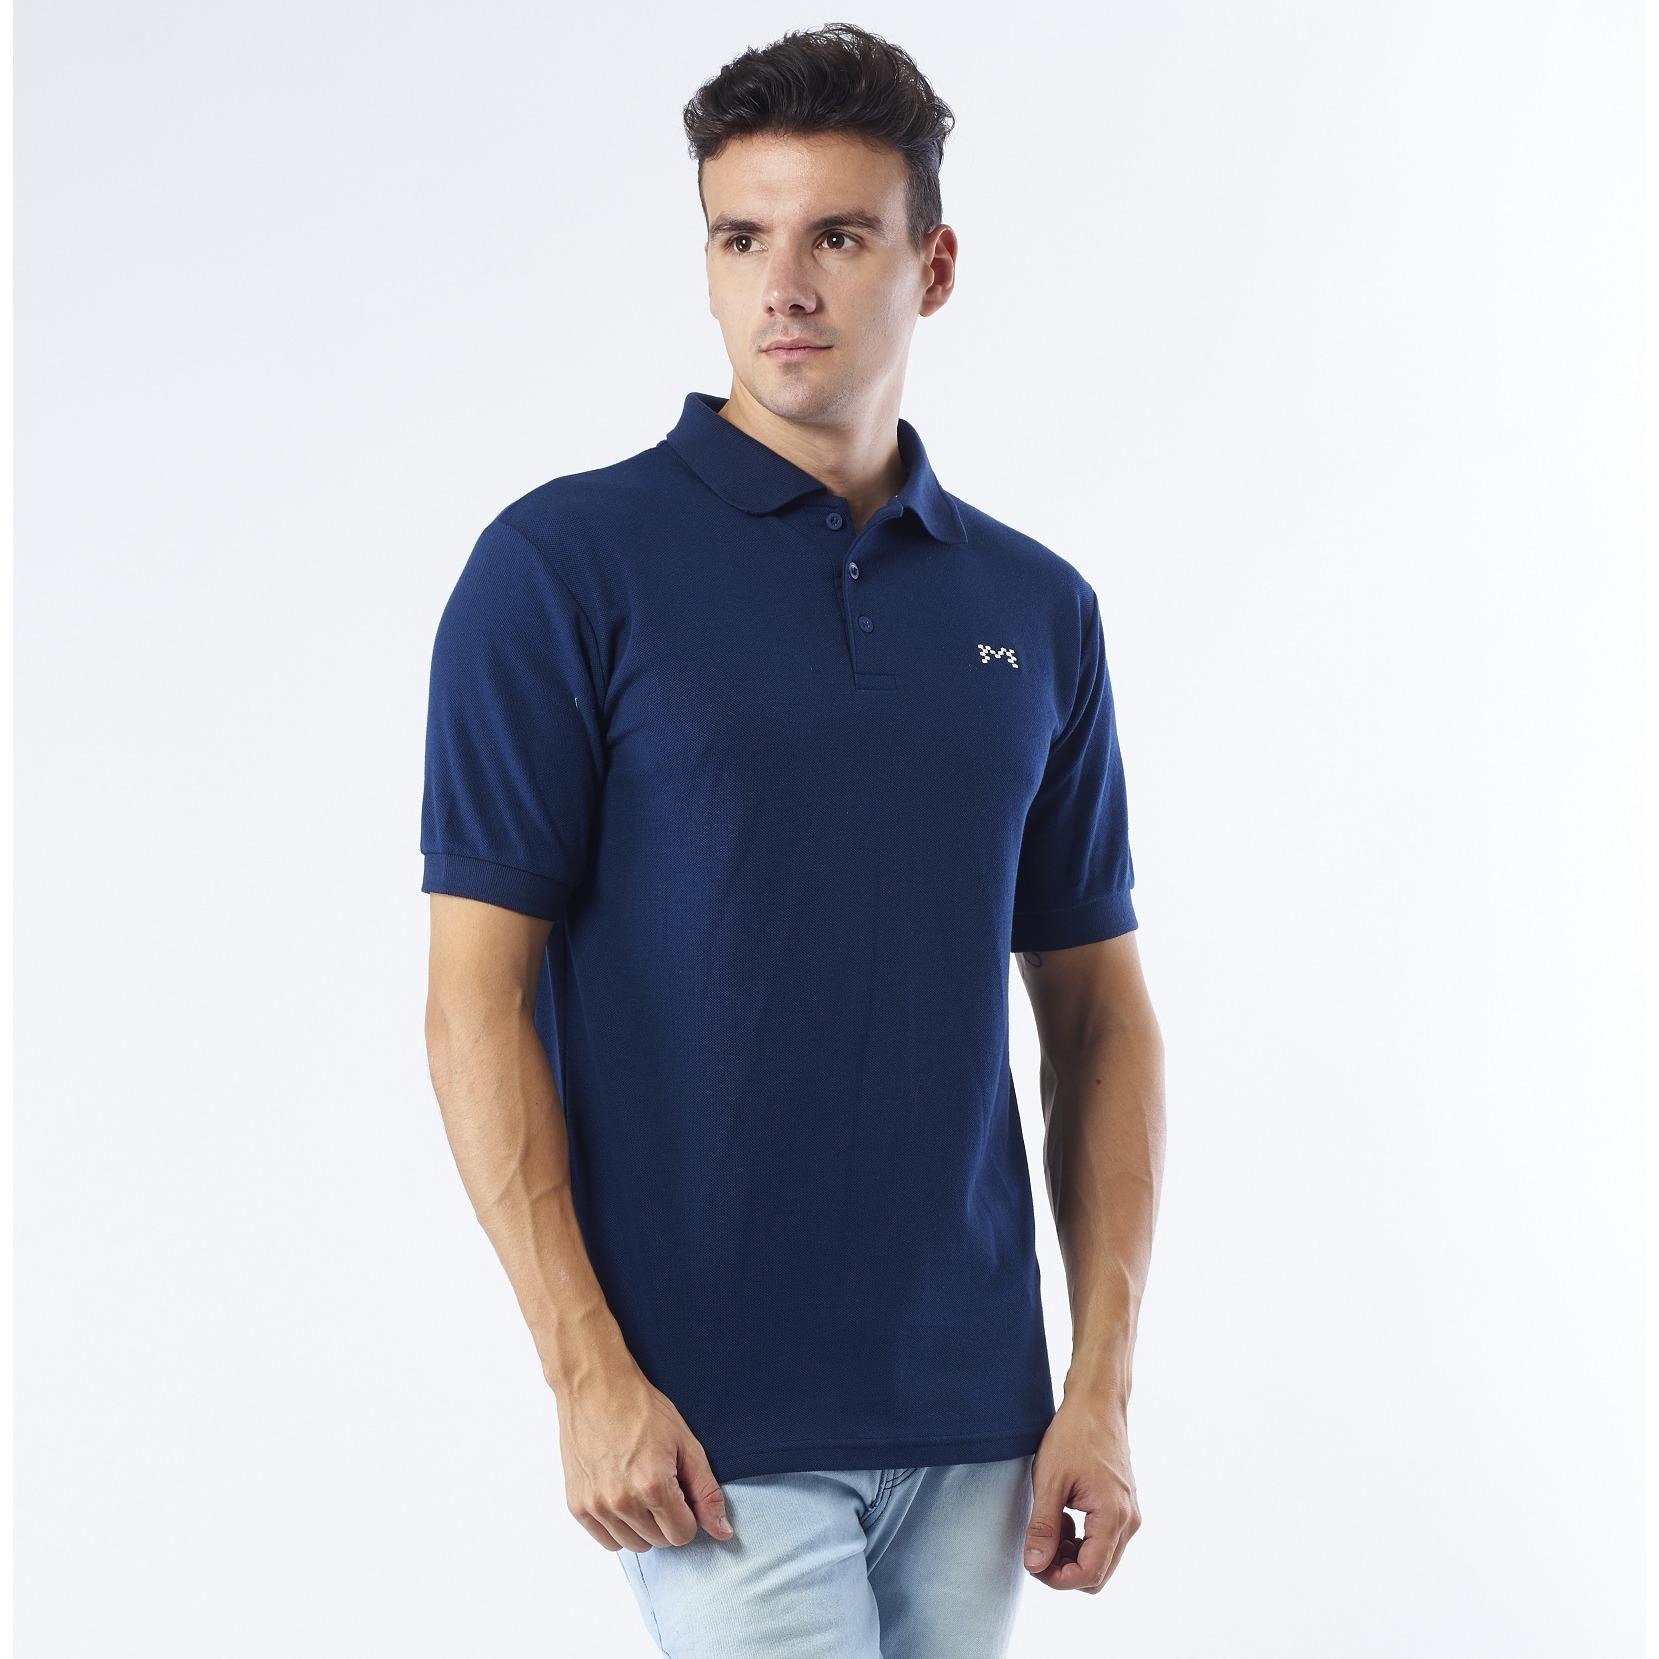 Jual Mark Inc Polo Shirt Navy Blue Antik